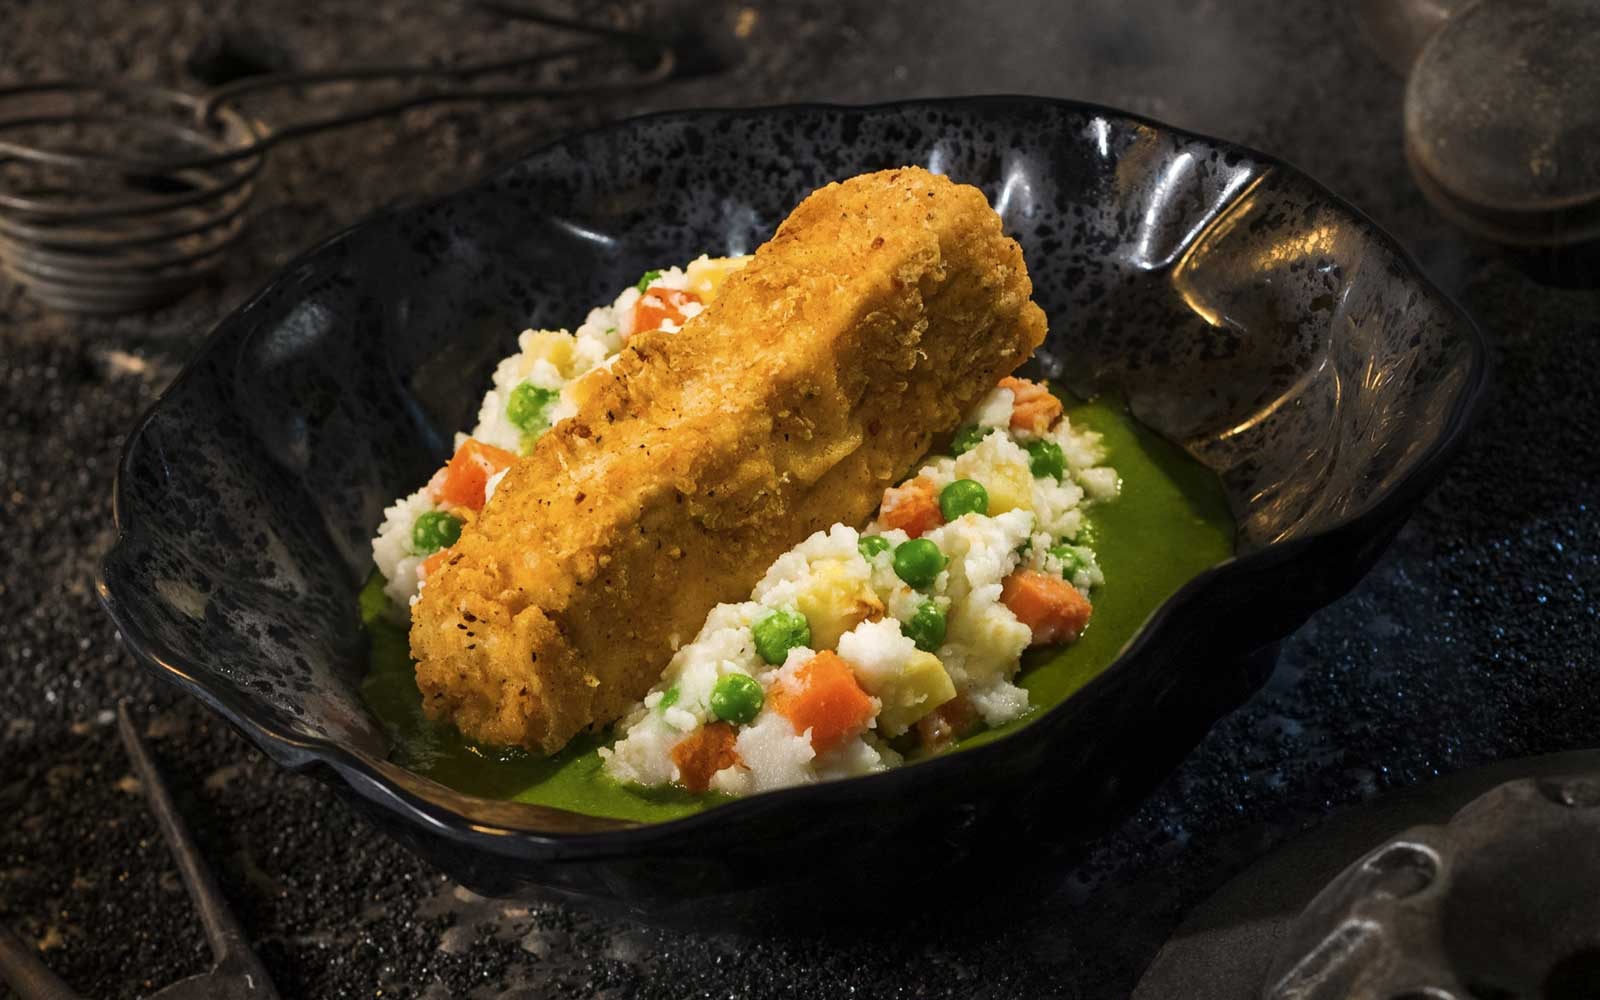 The Fried Endorian Tip-Yip, found at Docking Bay 7 Food and Cargo inside Star Wars: Galaxy's Edge, is a decadent chicken dish with roasted vegetable mash and herb gravy.